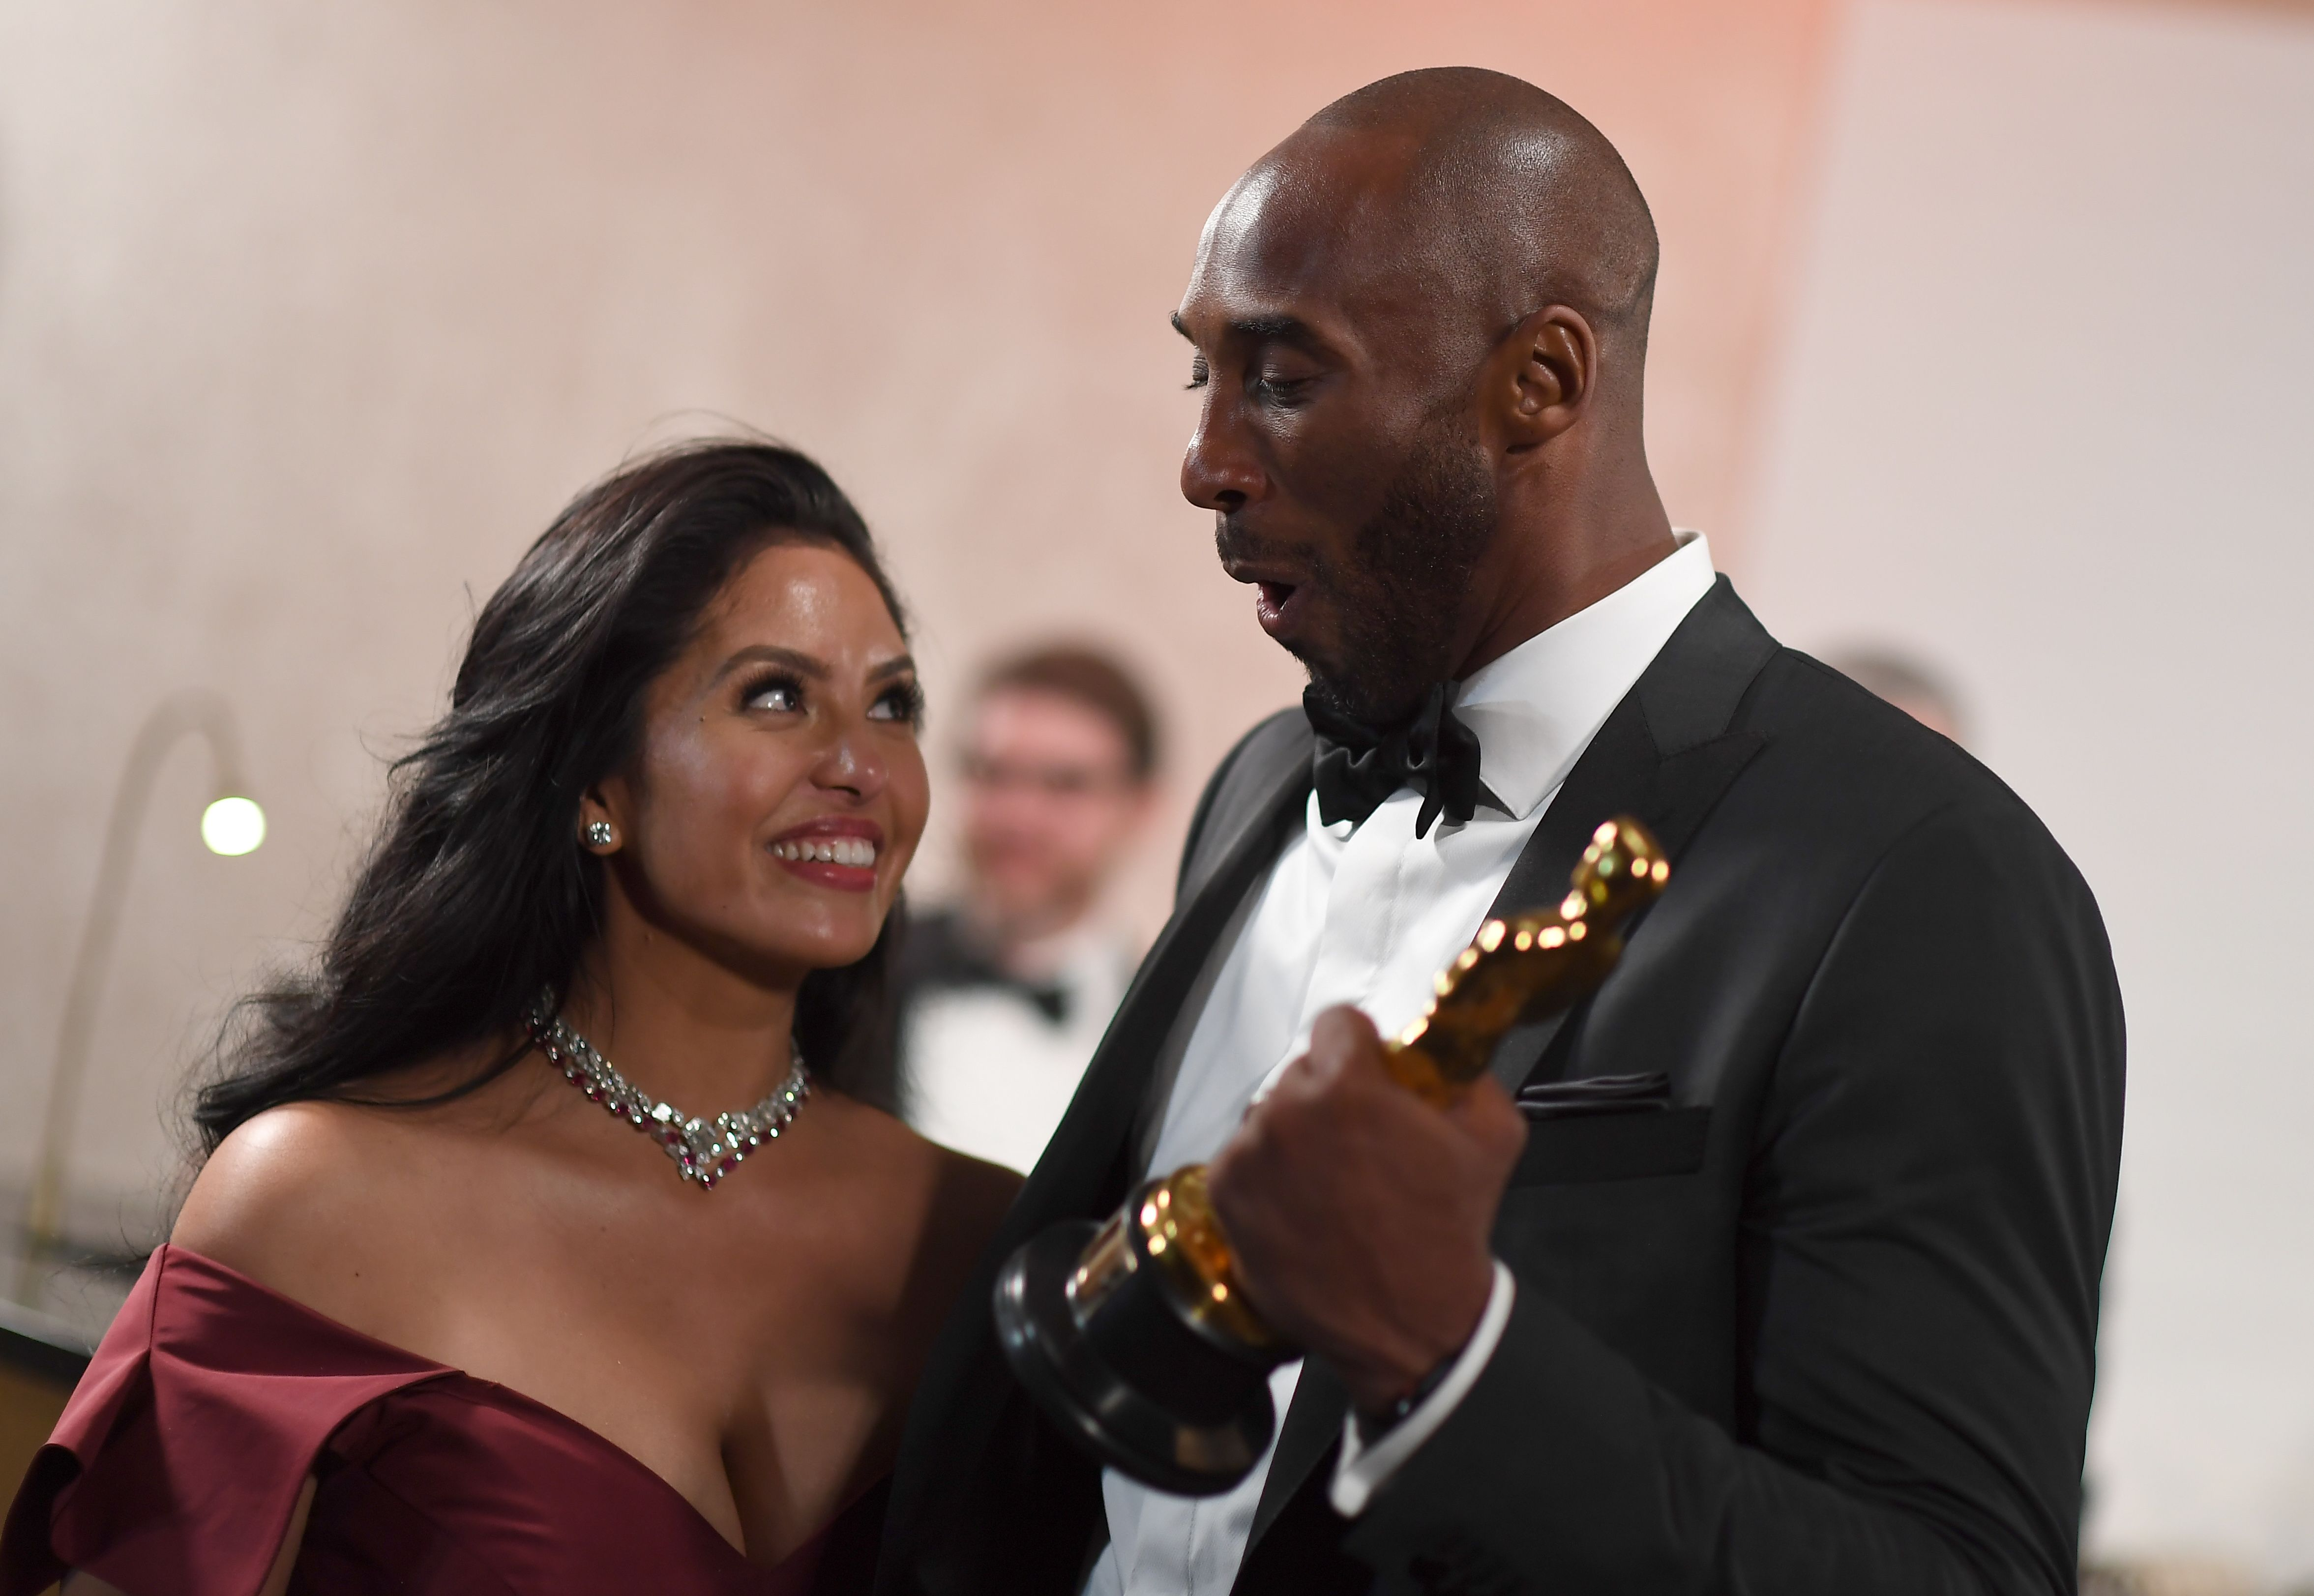 Vanessa Bryant Posted a Moving Response to the Lakers' Kobe Bryant Tribute